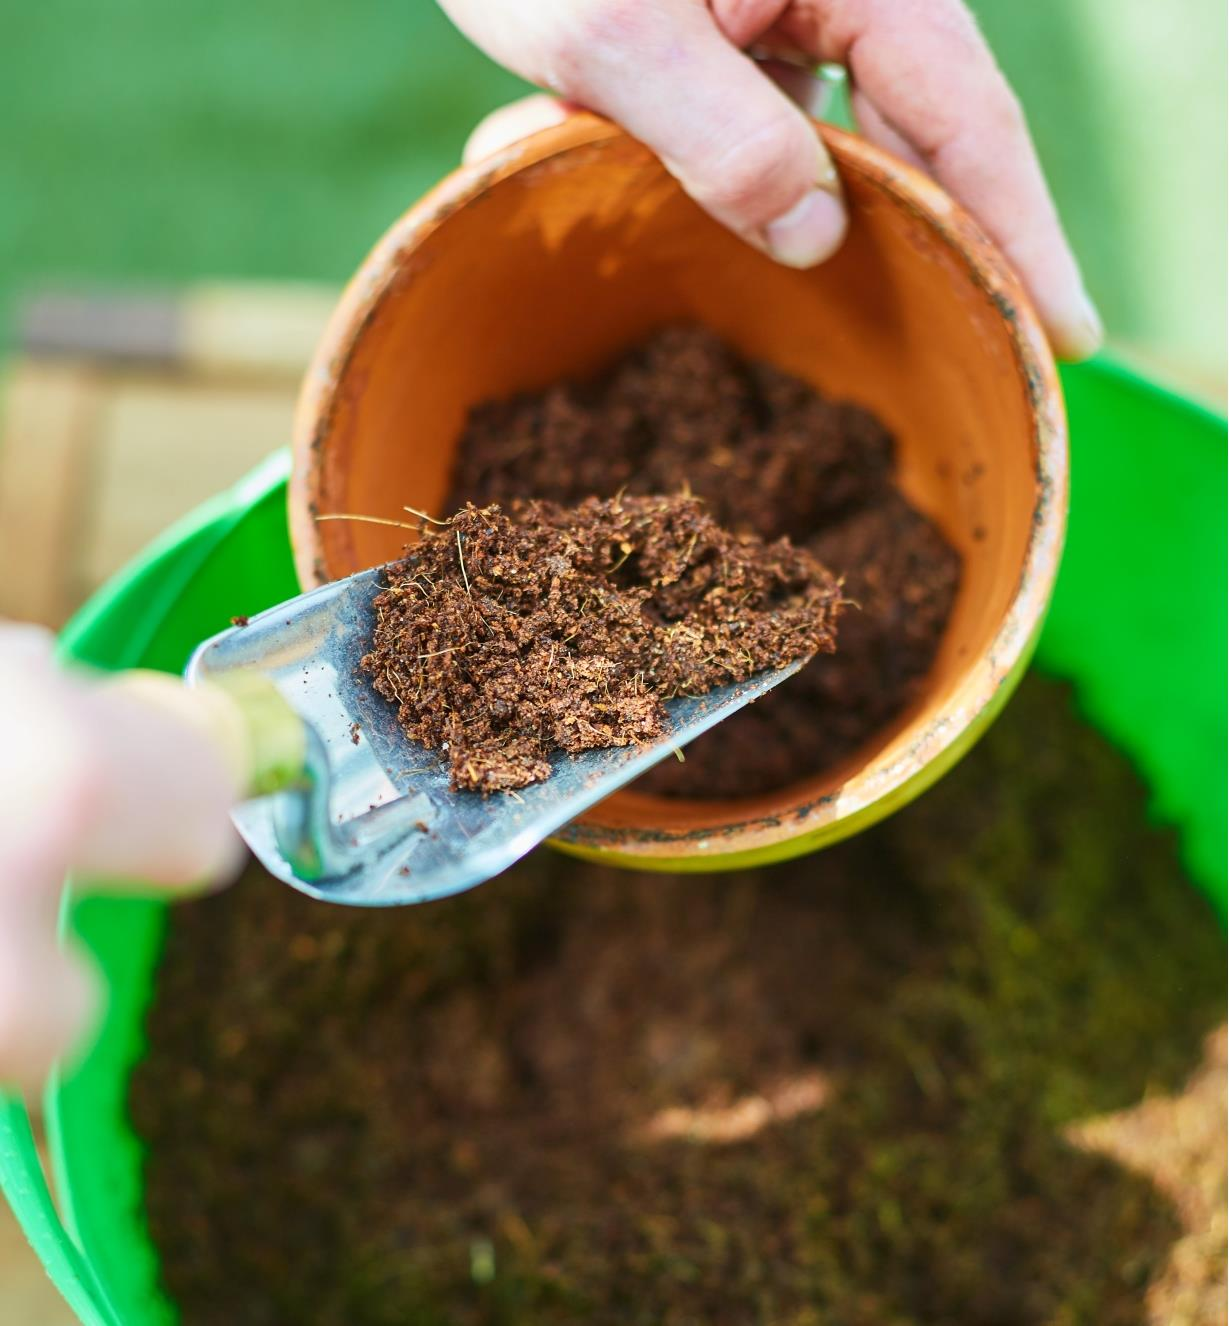 Scooping coir into a planting pot